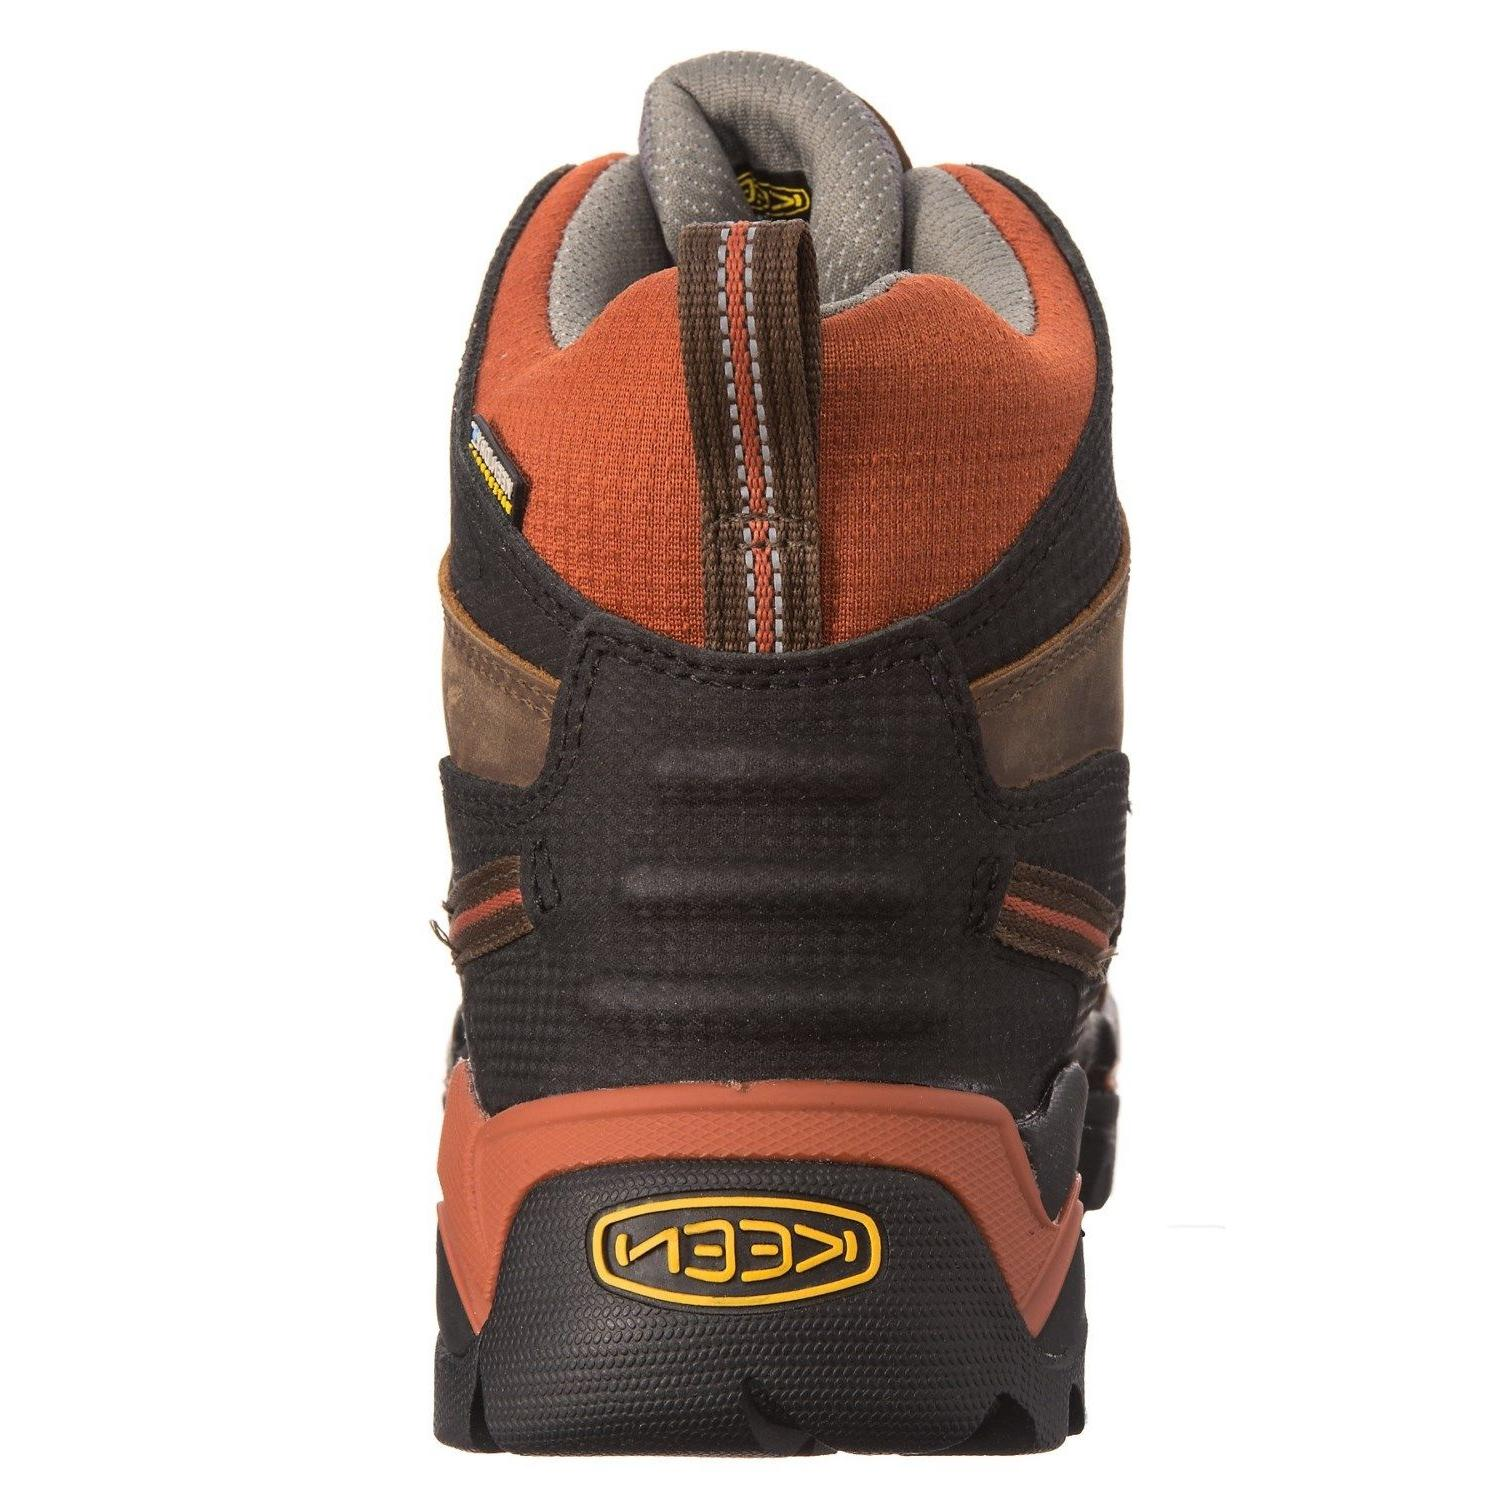 KEEN PITTSBURGH Mid Soft men's Work Hiker